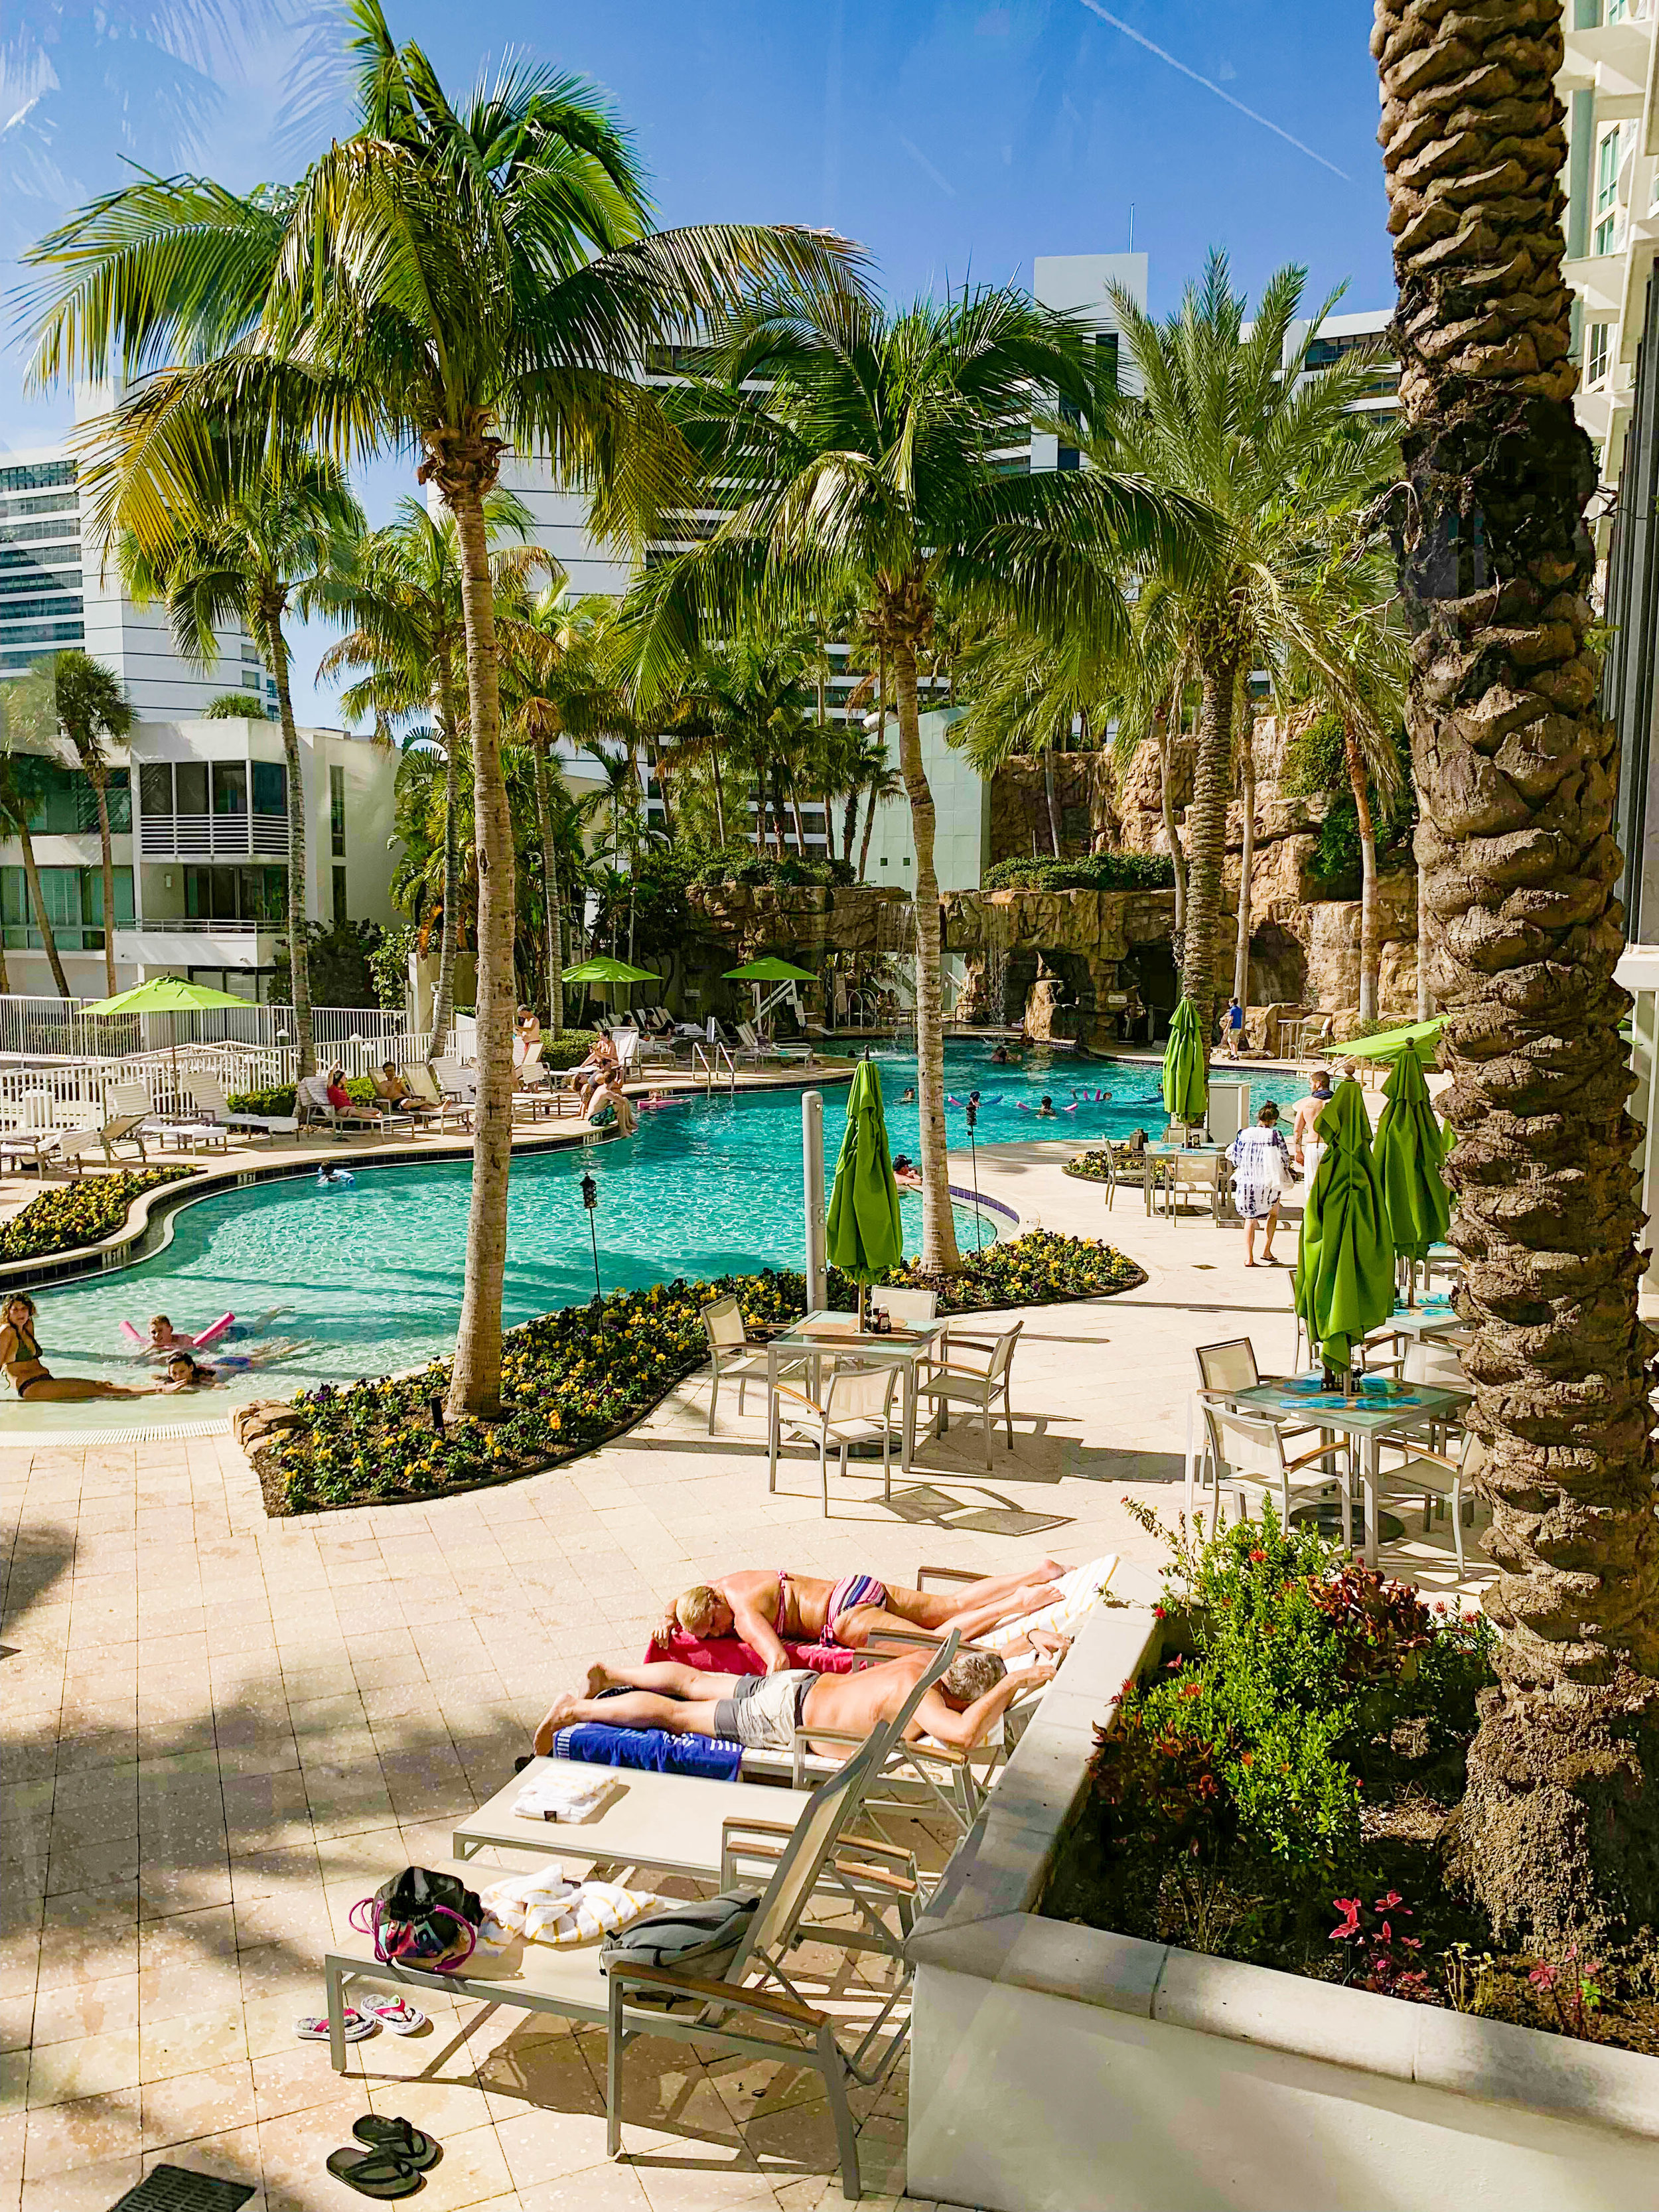 Hyatt Regency Sarasota Pool